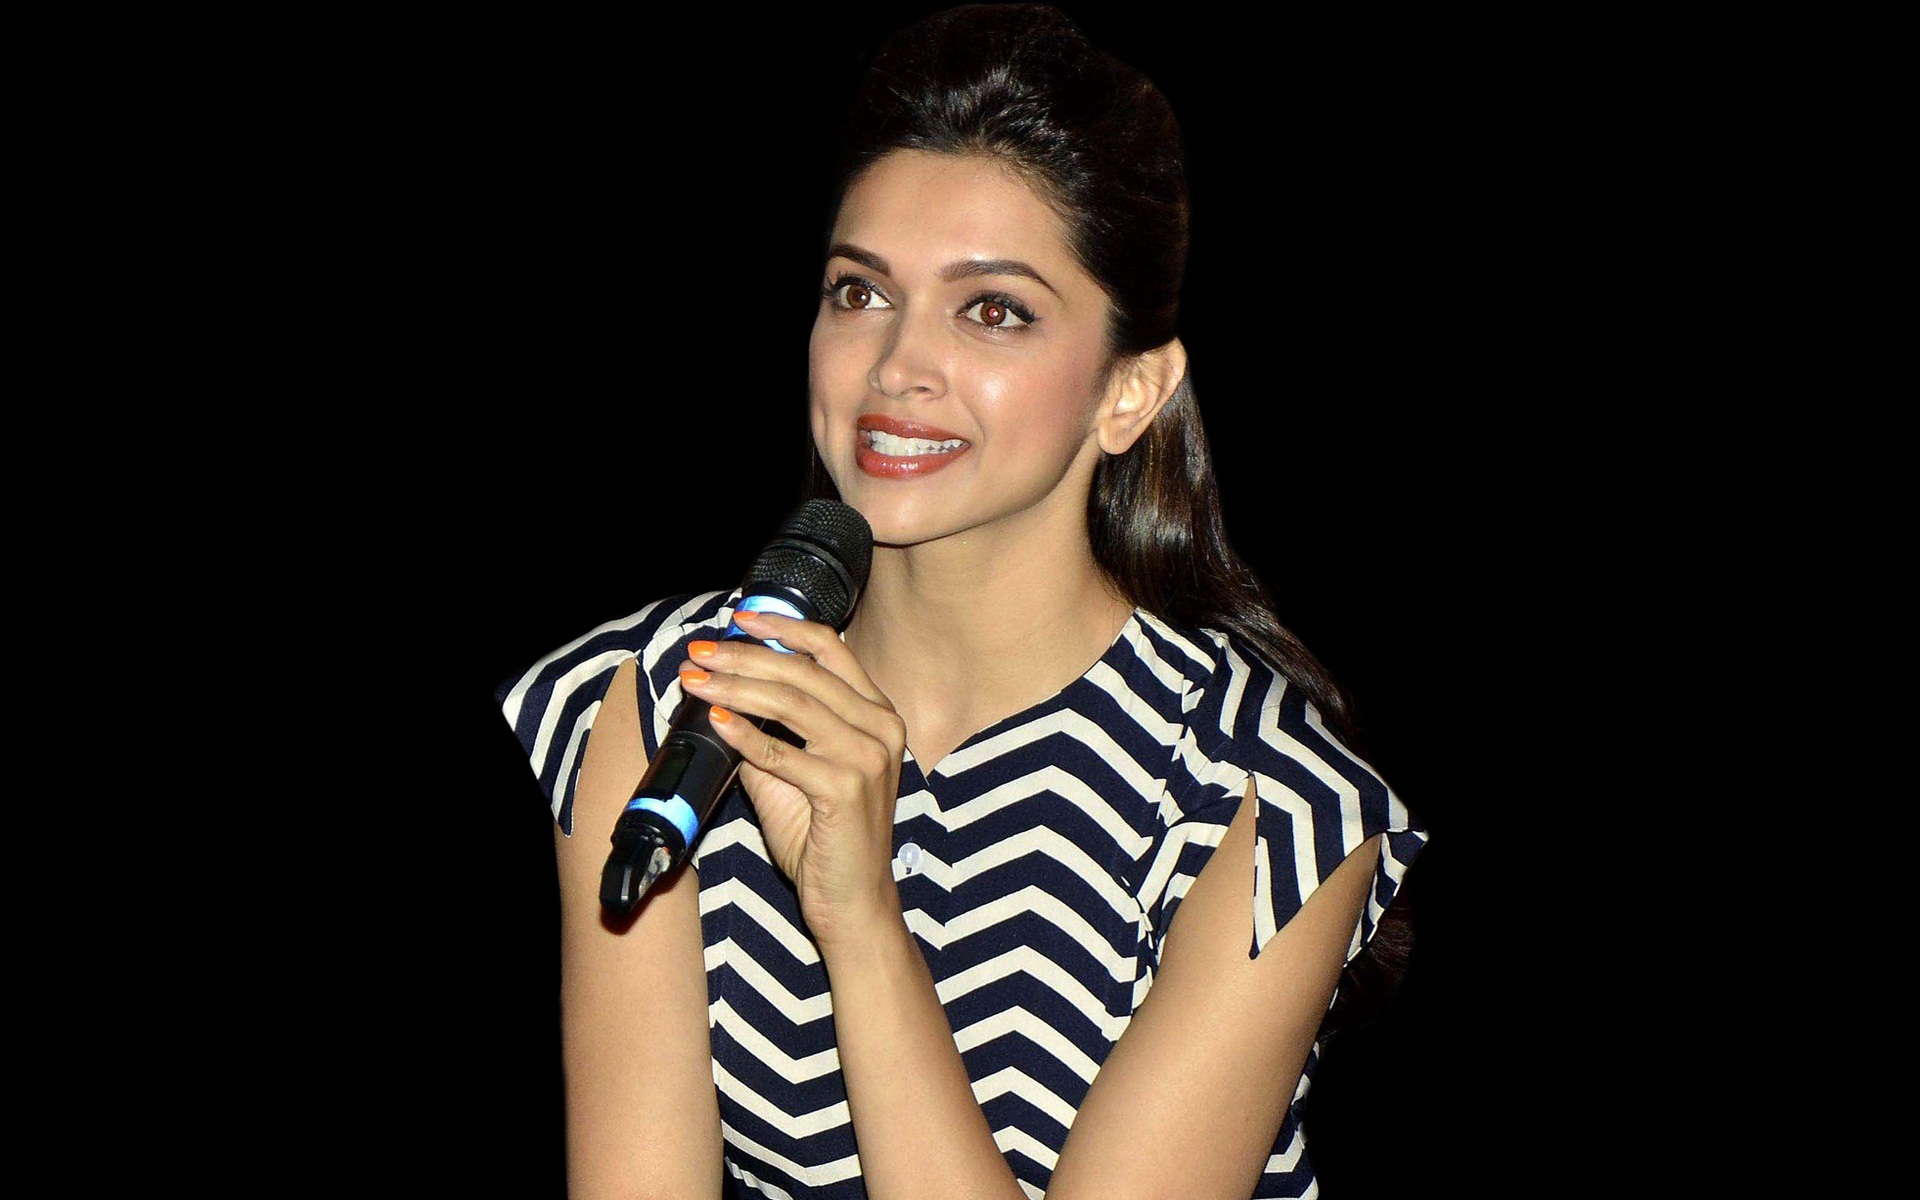 Deepika Padukone Gorgeous Look Free Hd Images